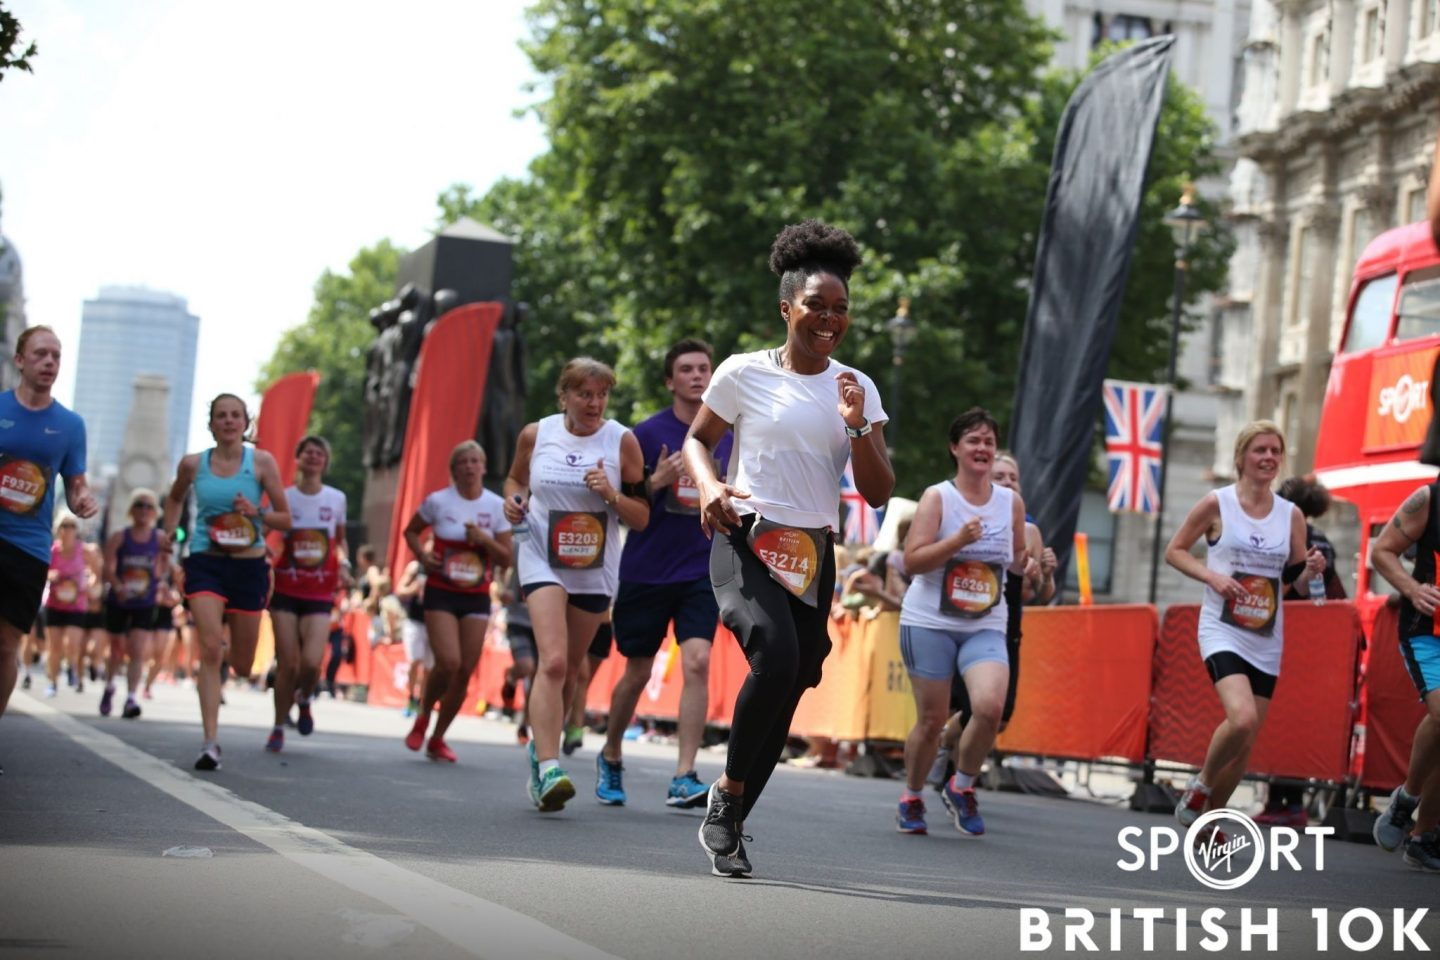 British 10km as training for First Half Marathon